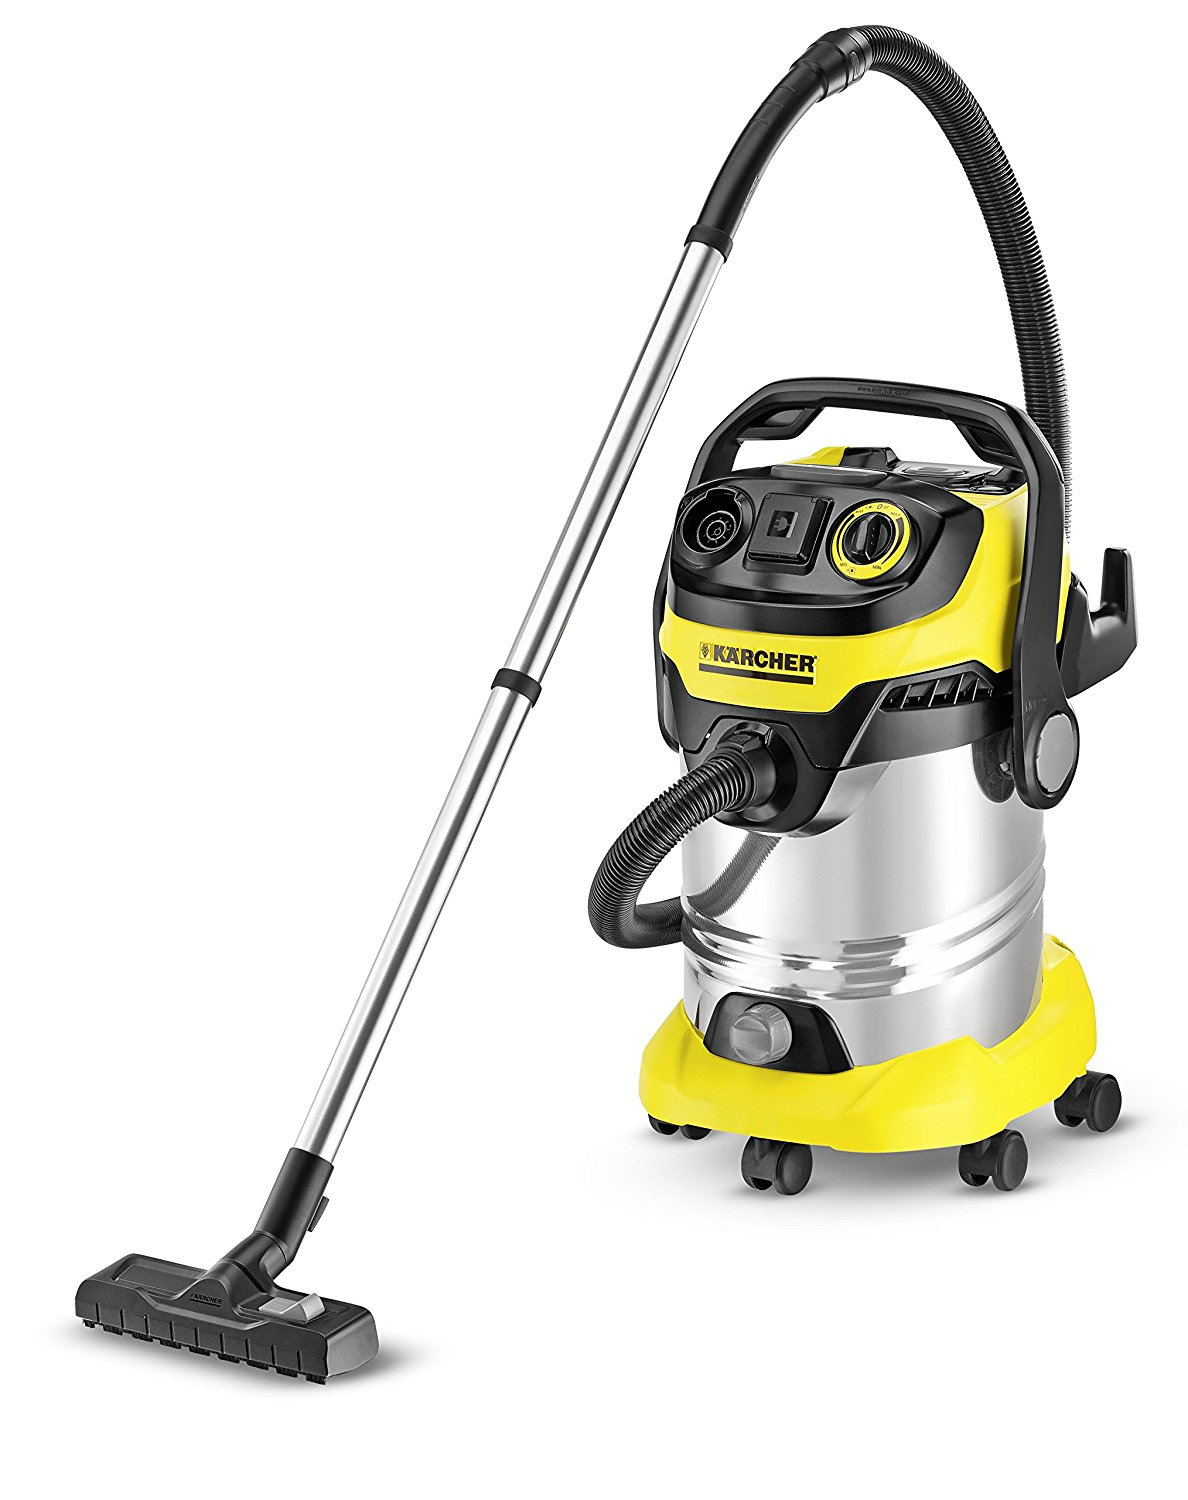 Karcher WD 6 Premium Wet and Dry Vacuum Cleaner